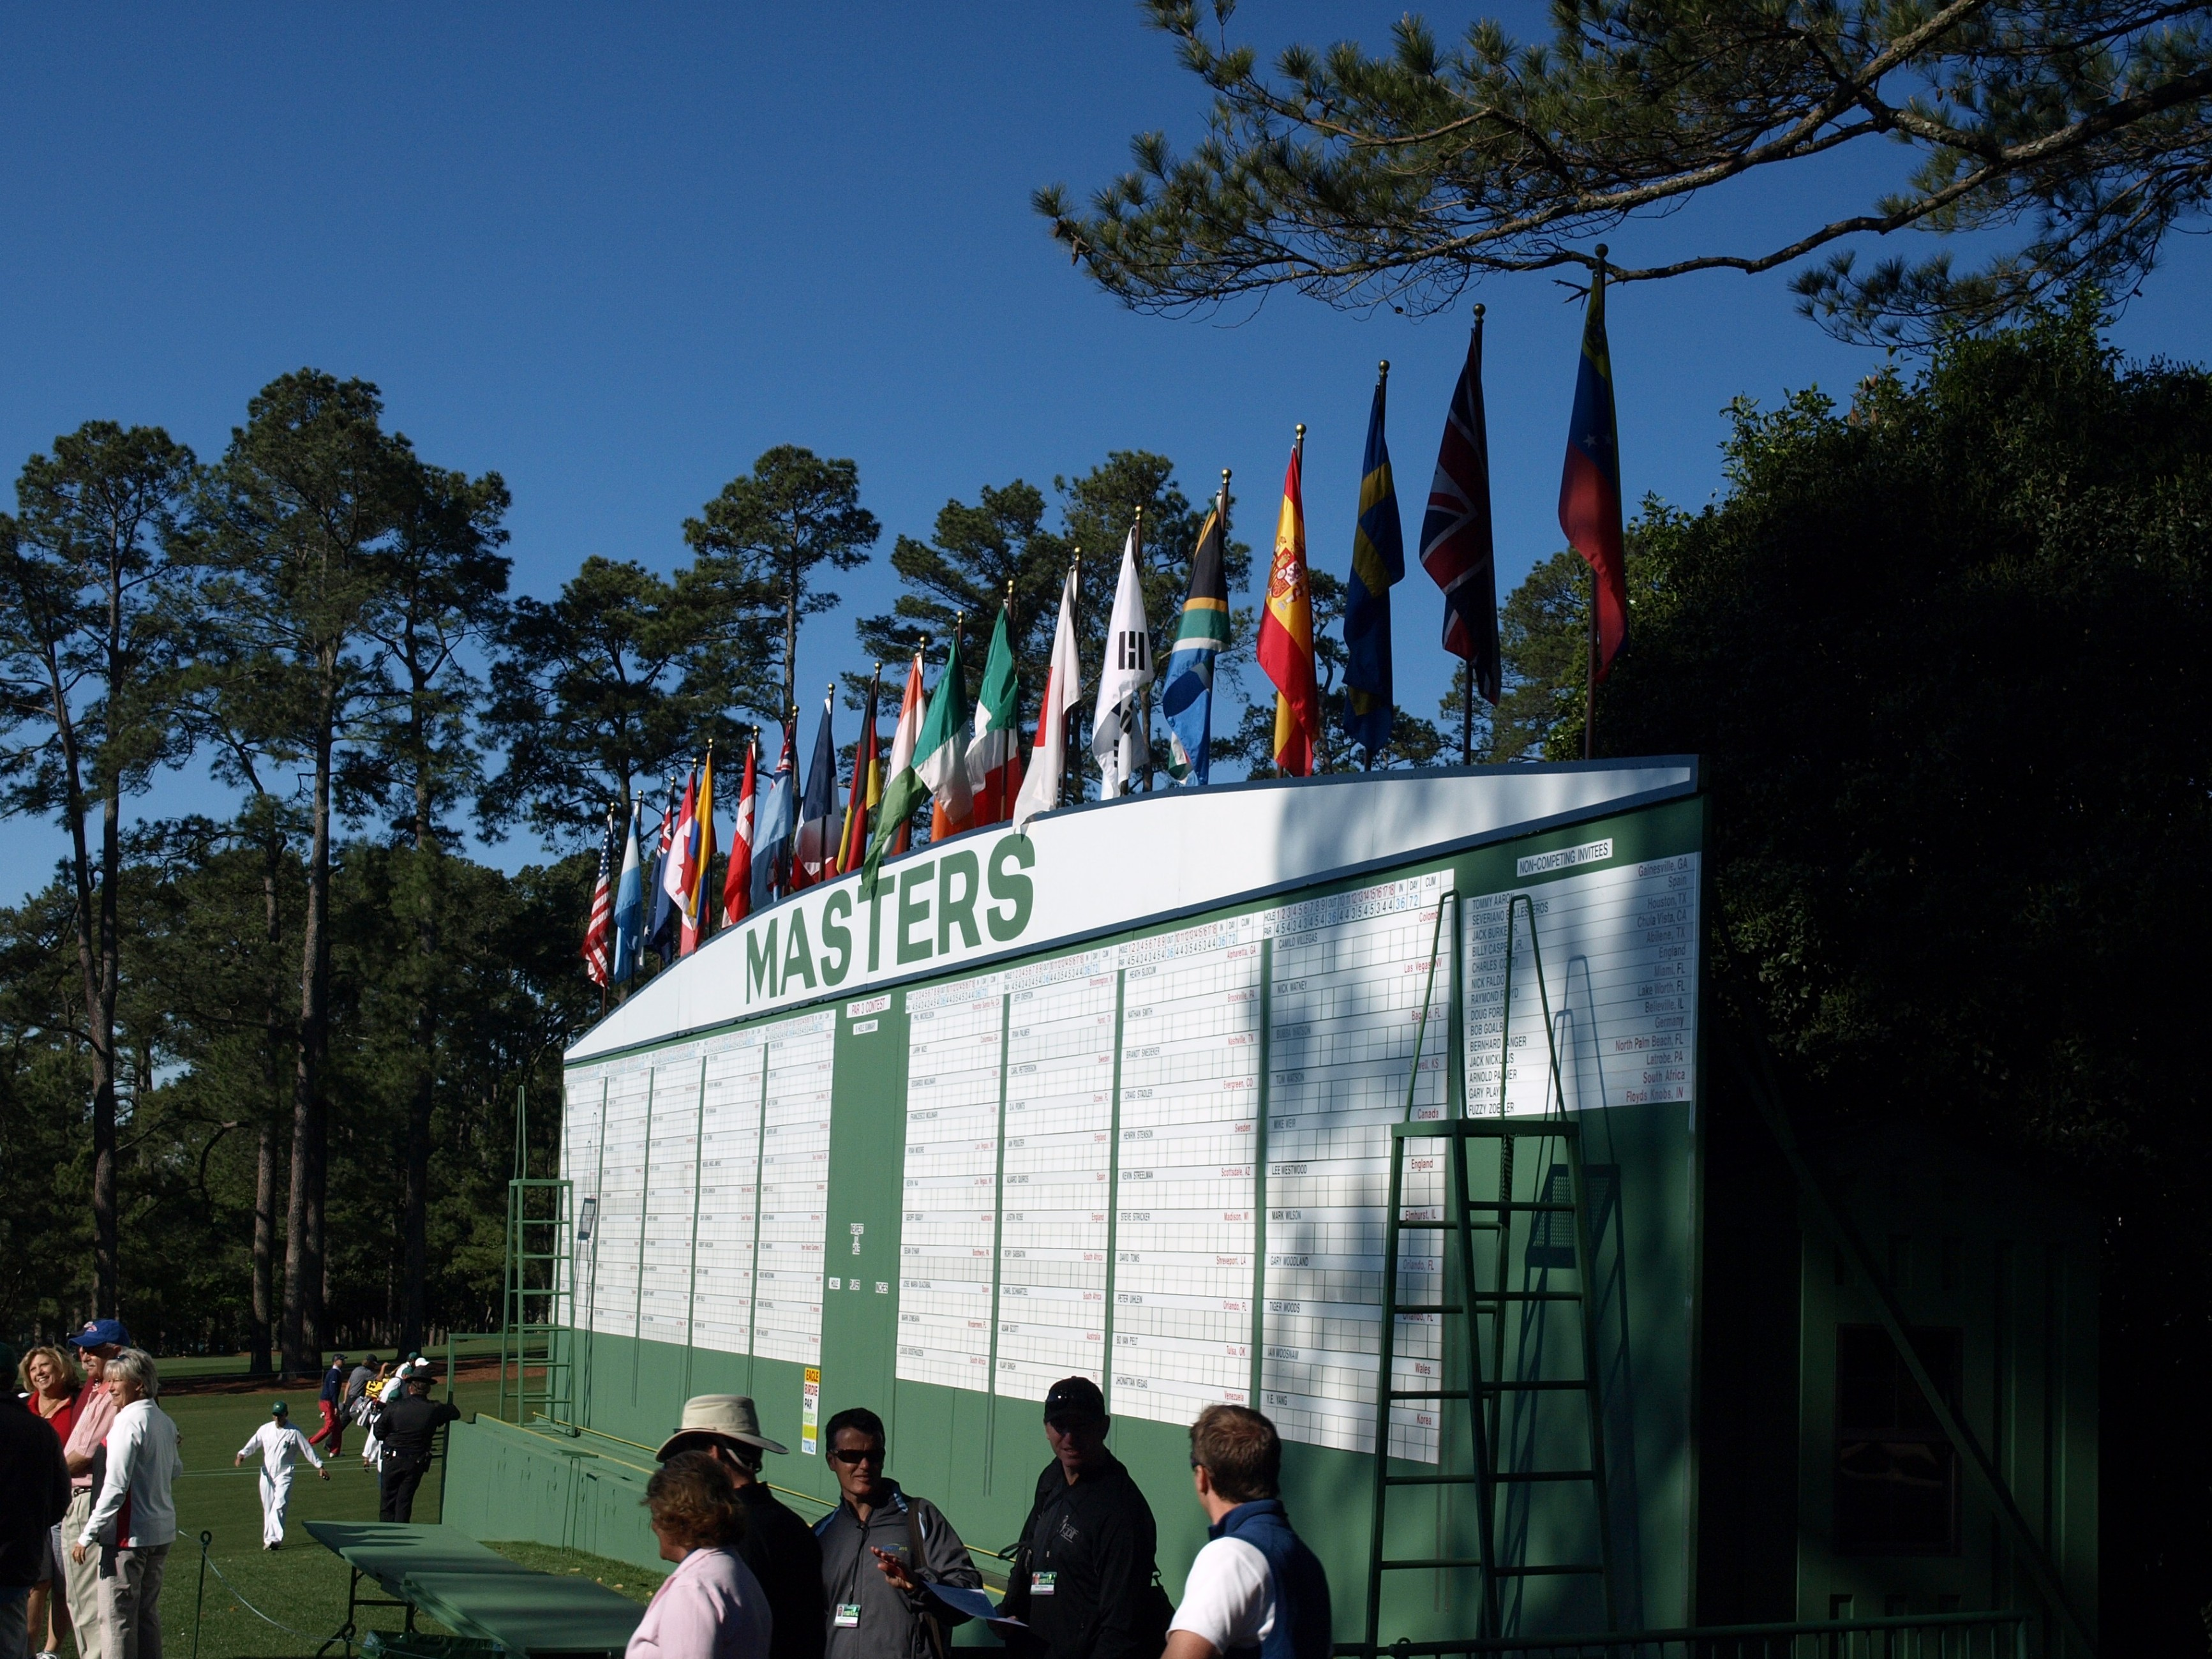 The main scoreboard at Augusta National Golf Club